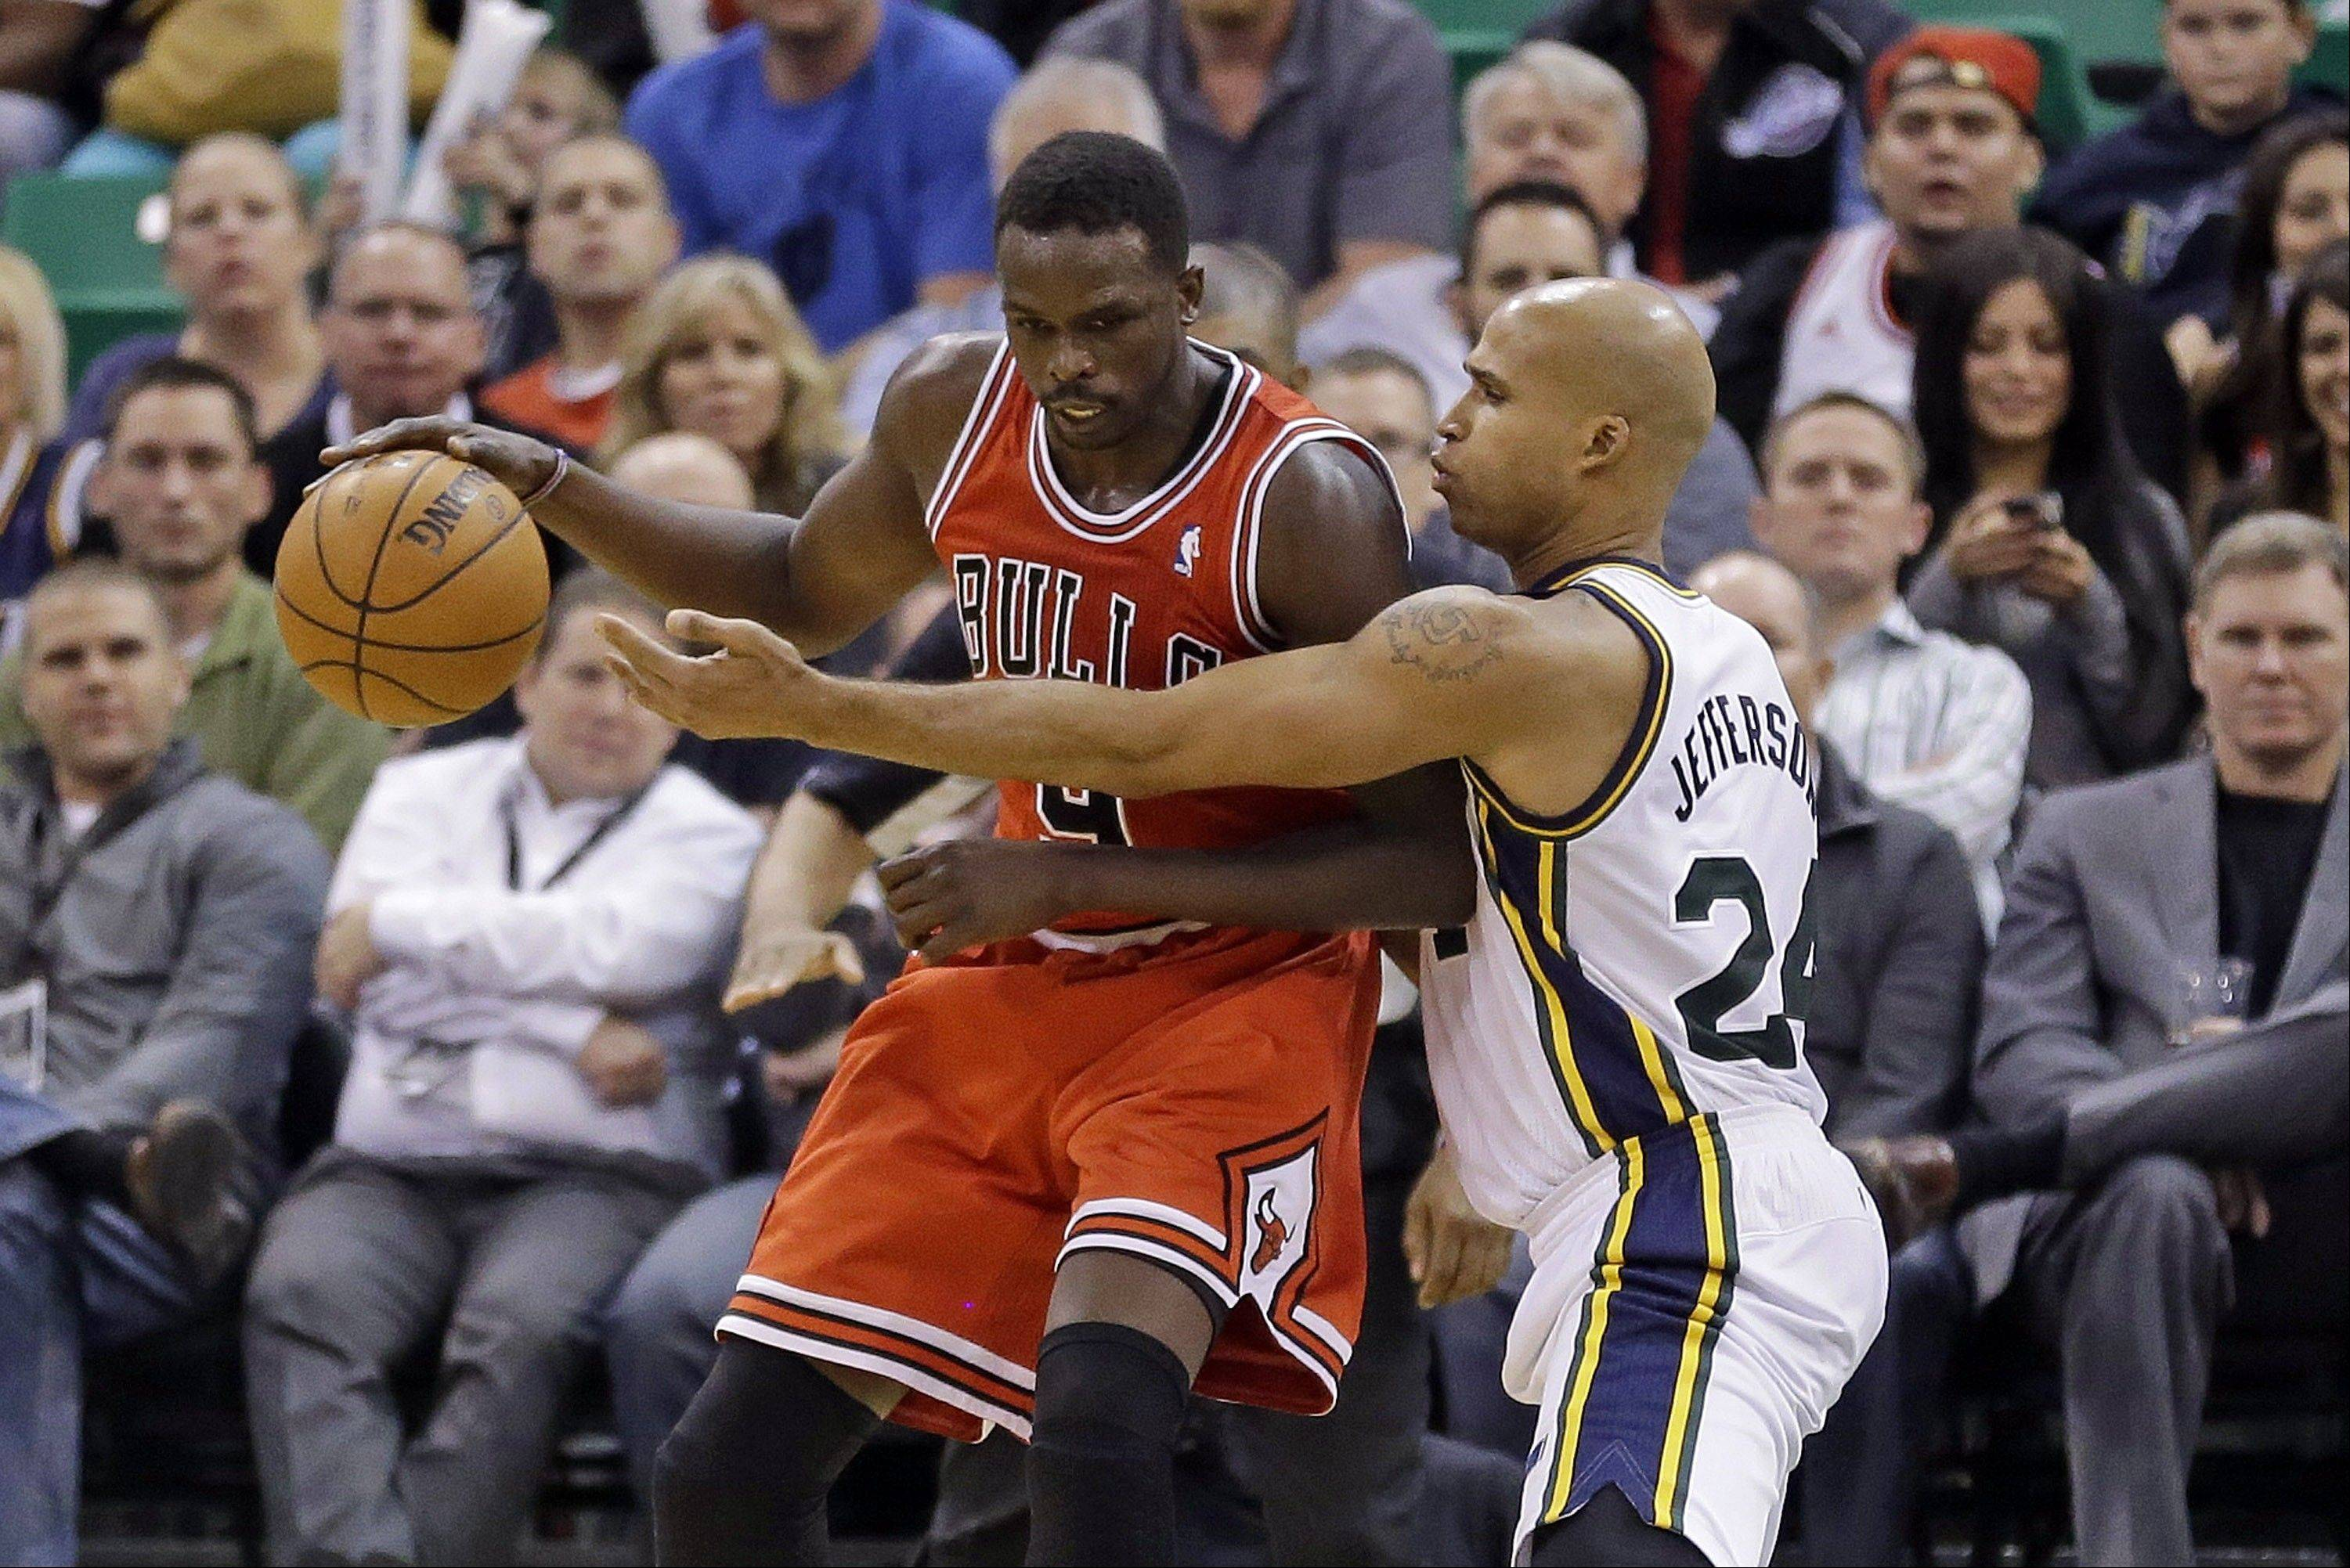 Will Luol Deng be ex-Bull by season's end?